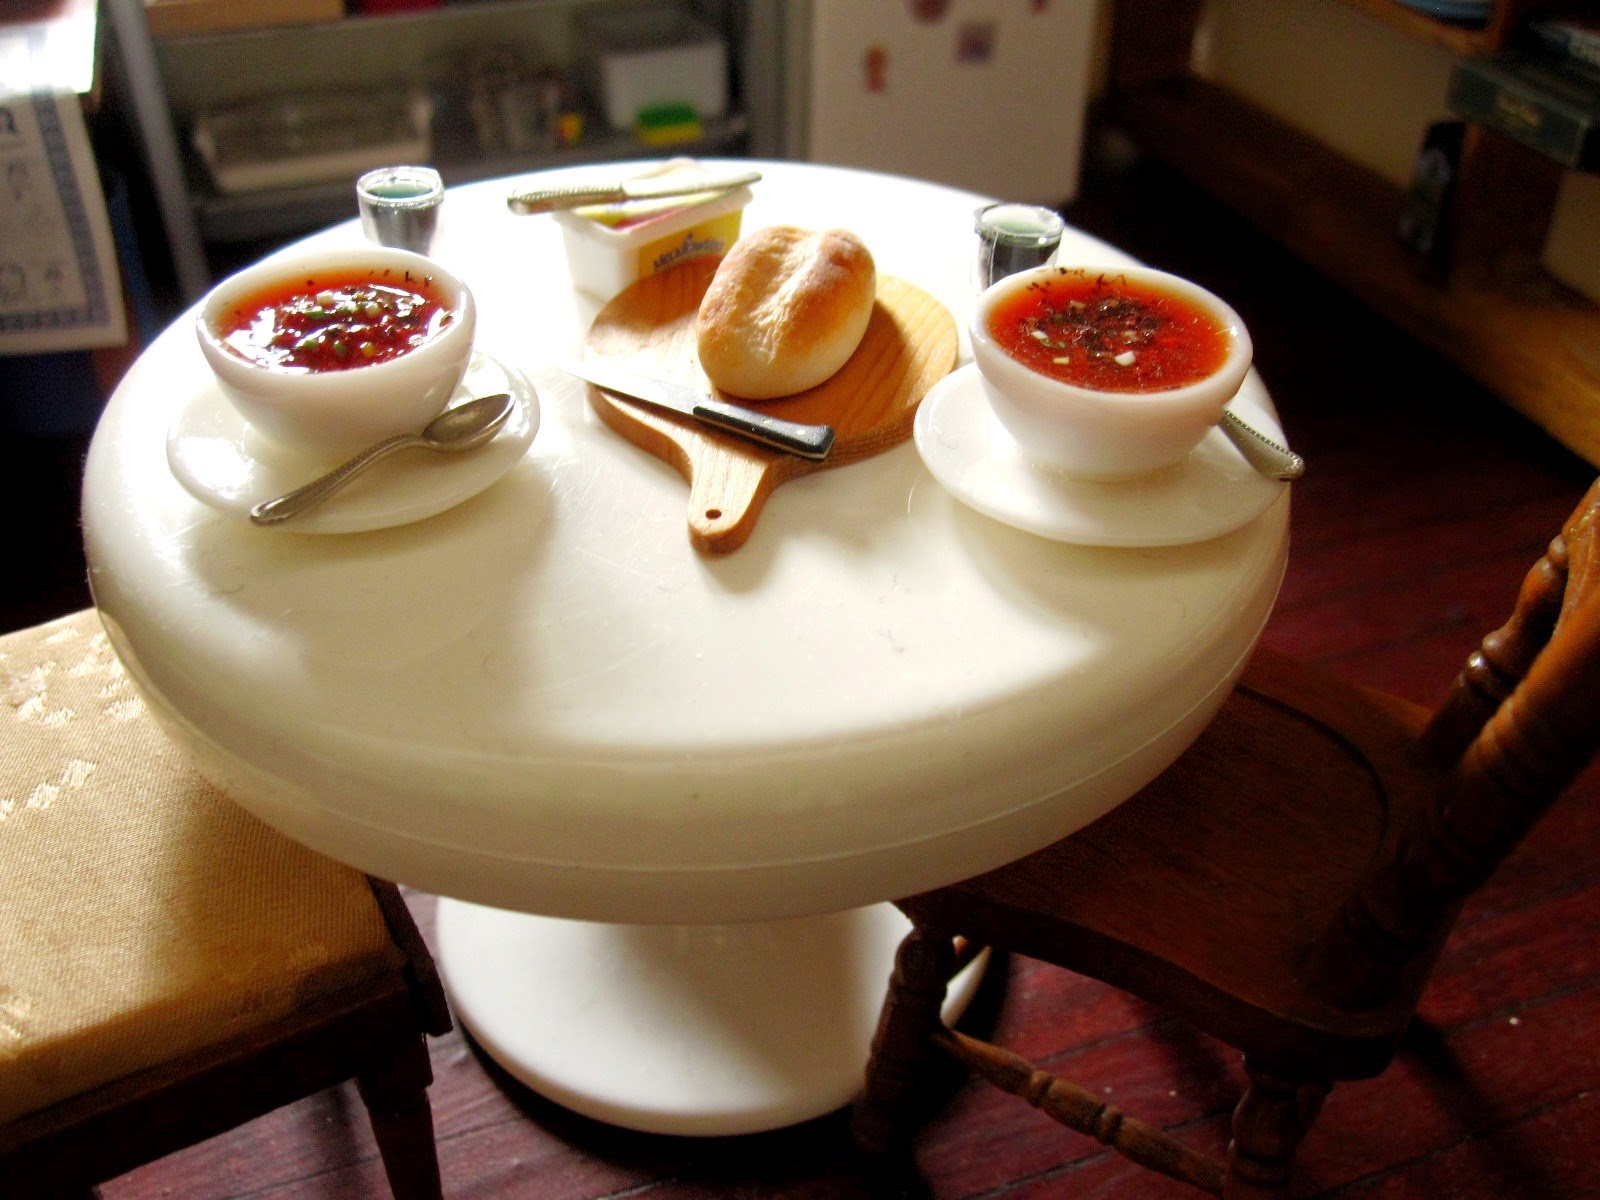 Dolls house miniature table set with two bowls of soup and glasses of wine, and a loaf of crusty bread